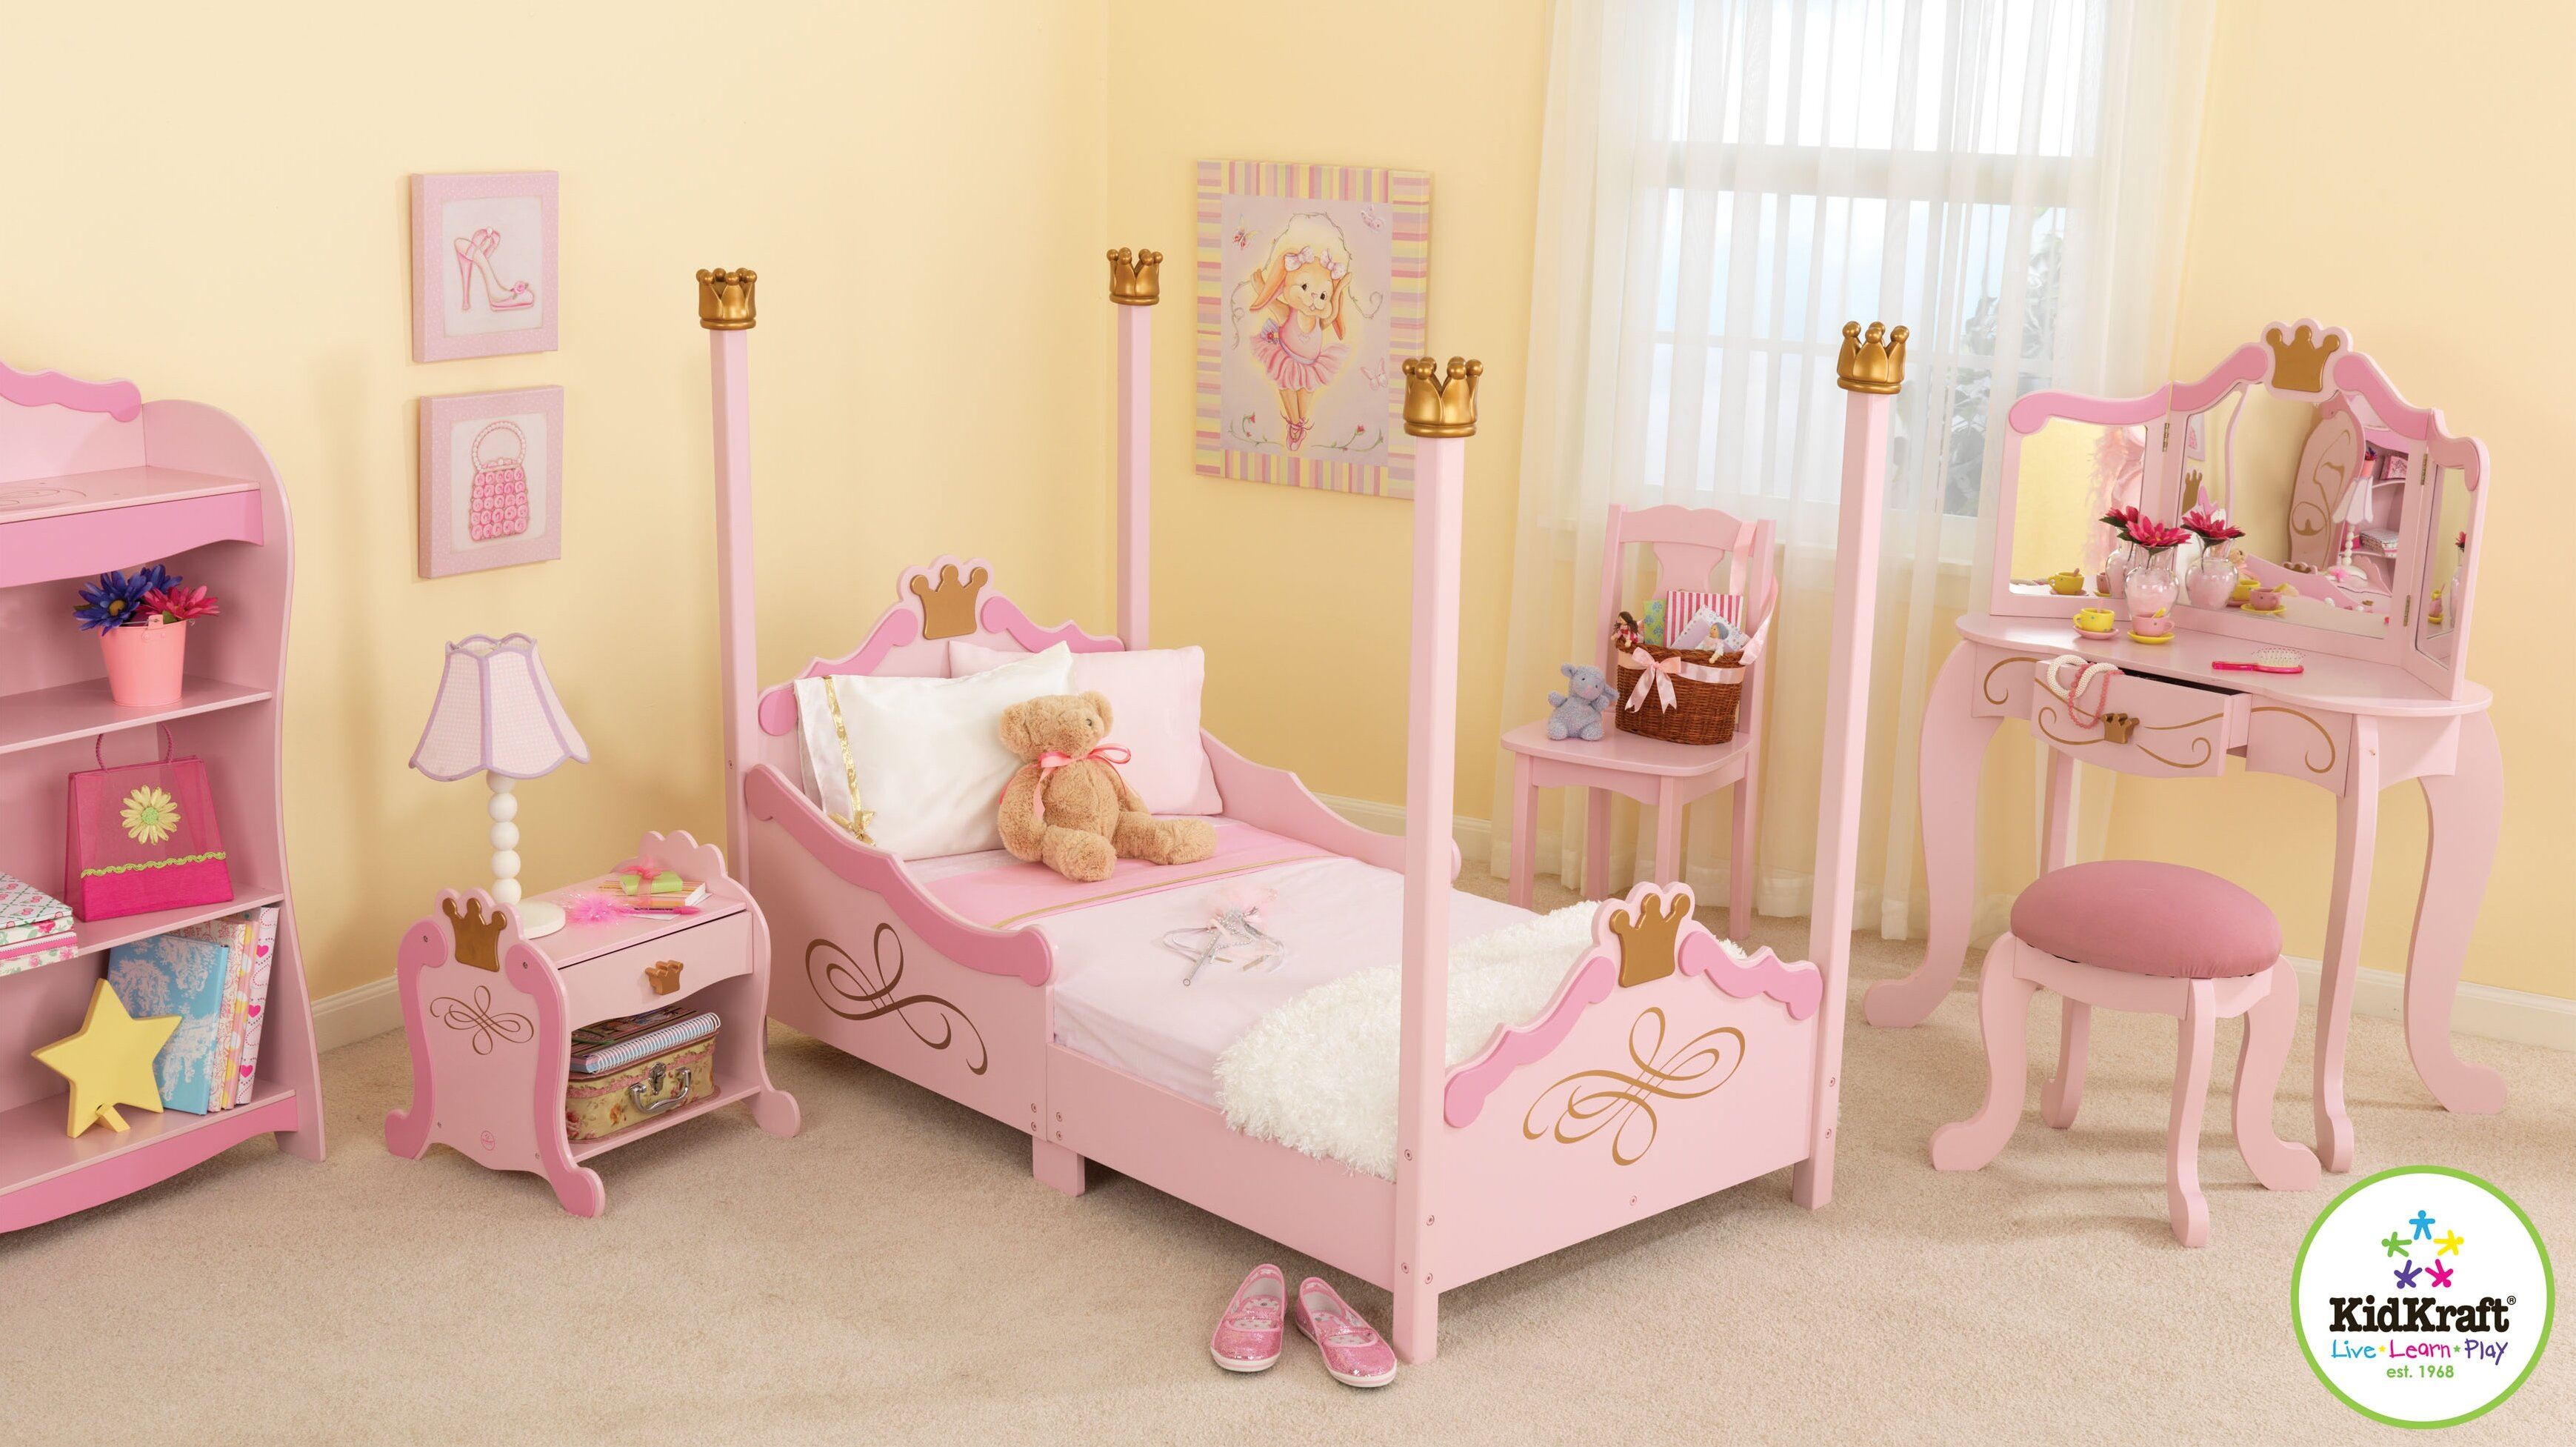 KidKraft Princess Toddler Four Poster Configurable Bedroom Set Reviews